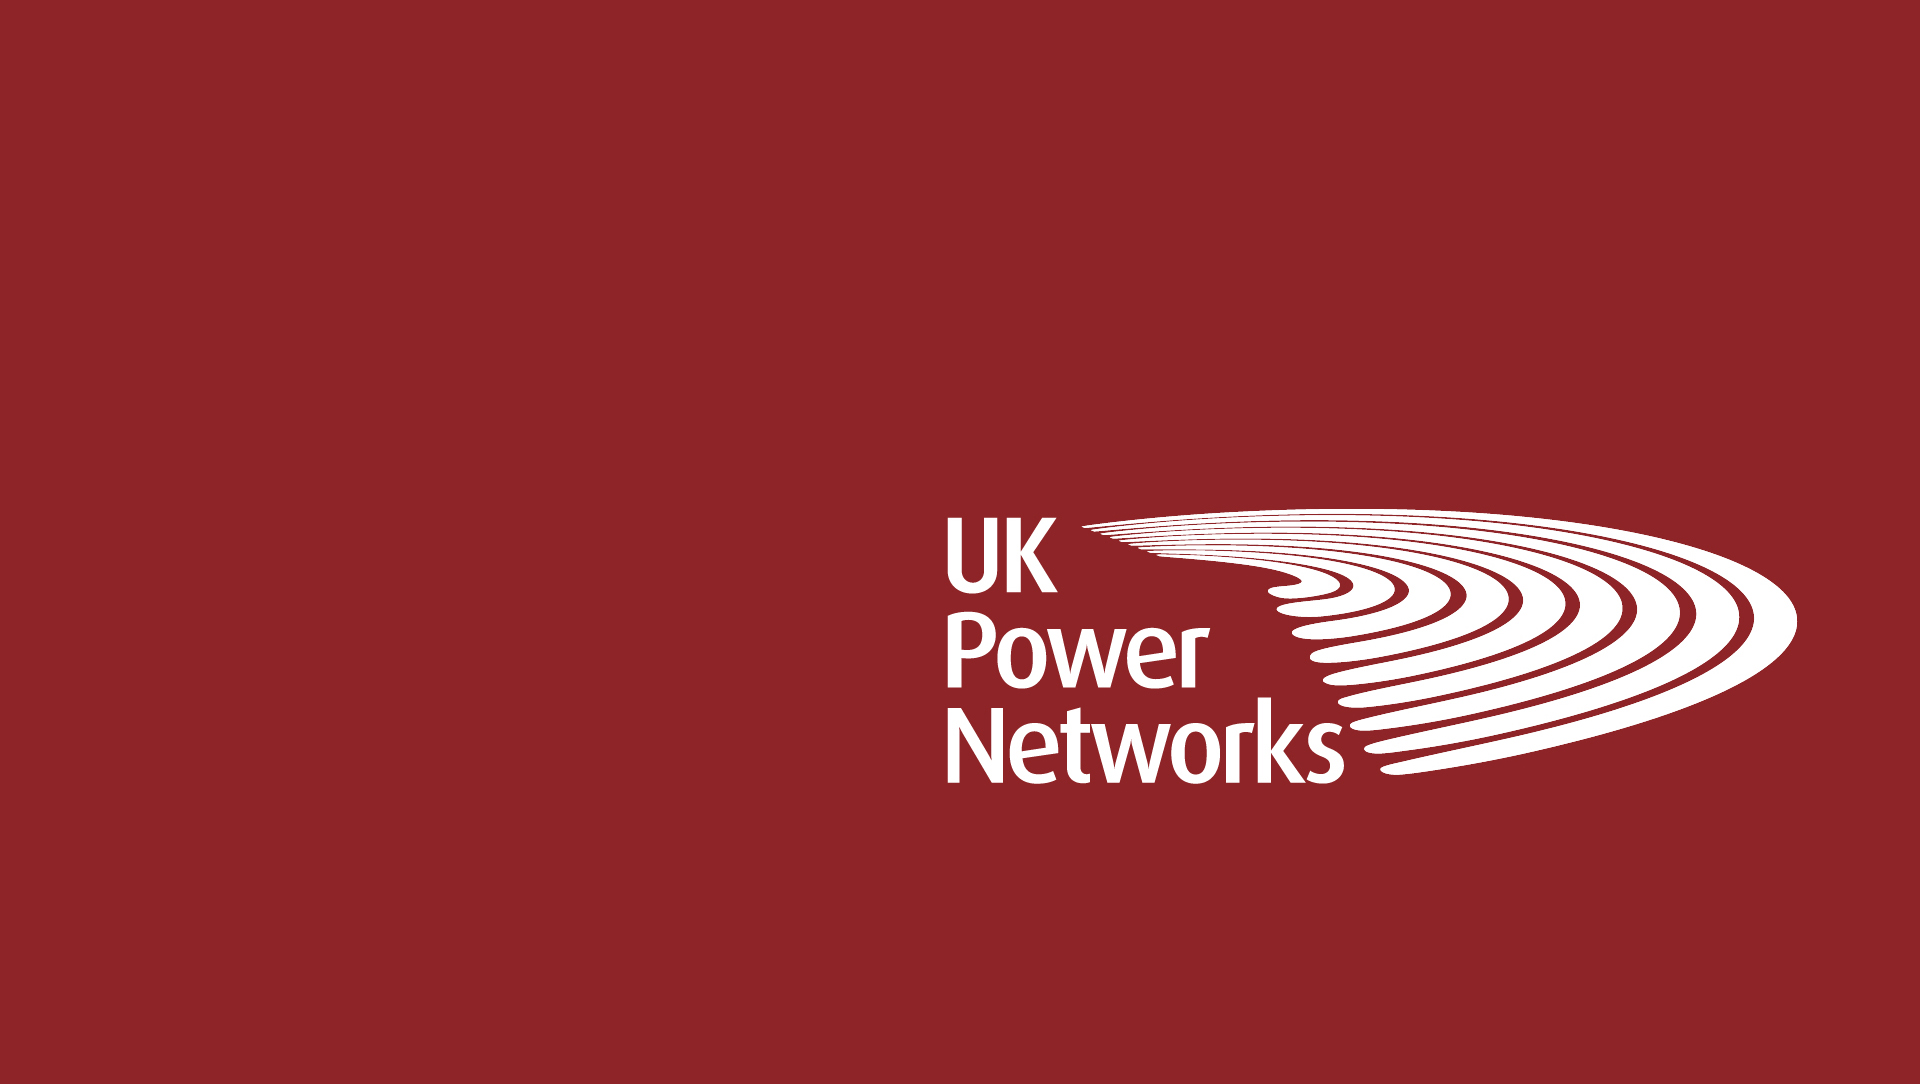 UK Power Networks logo in white on a crimson background